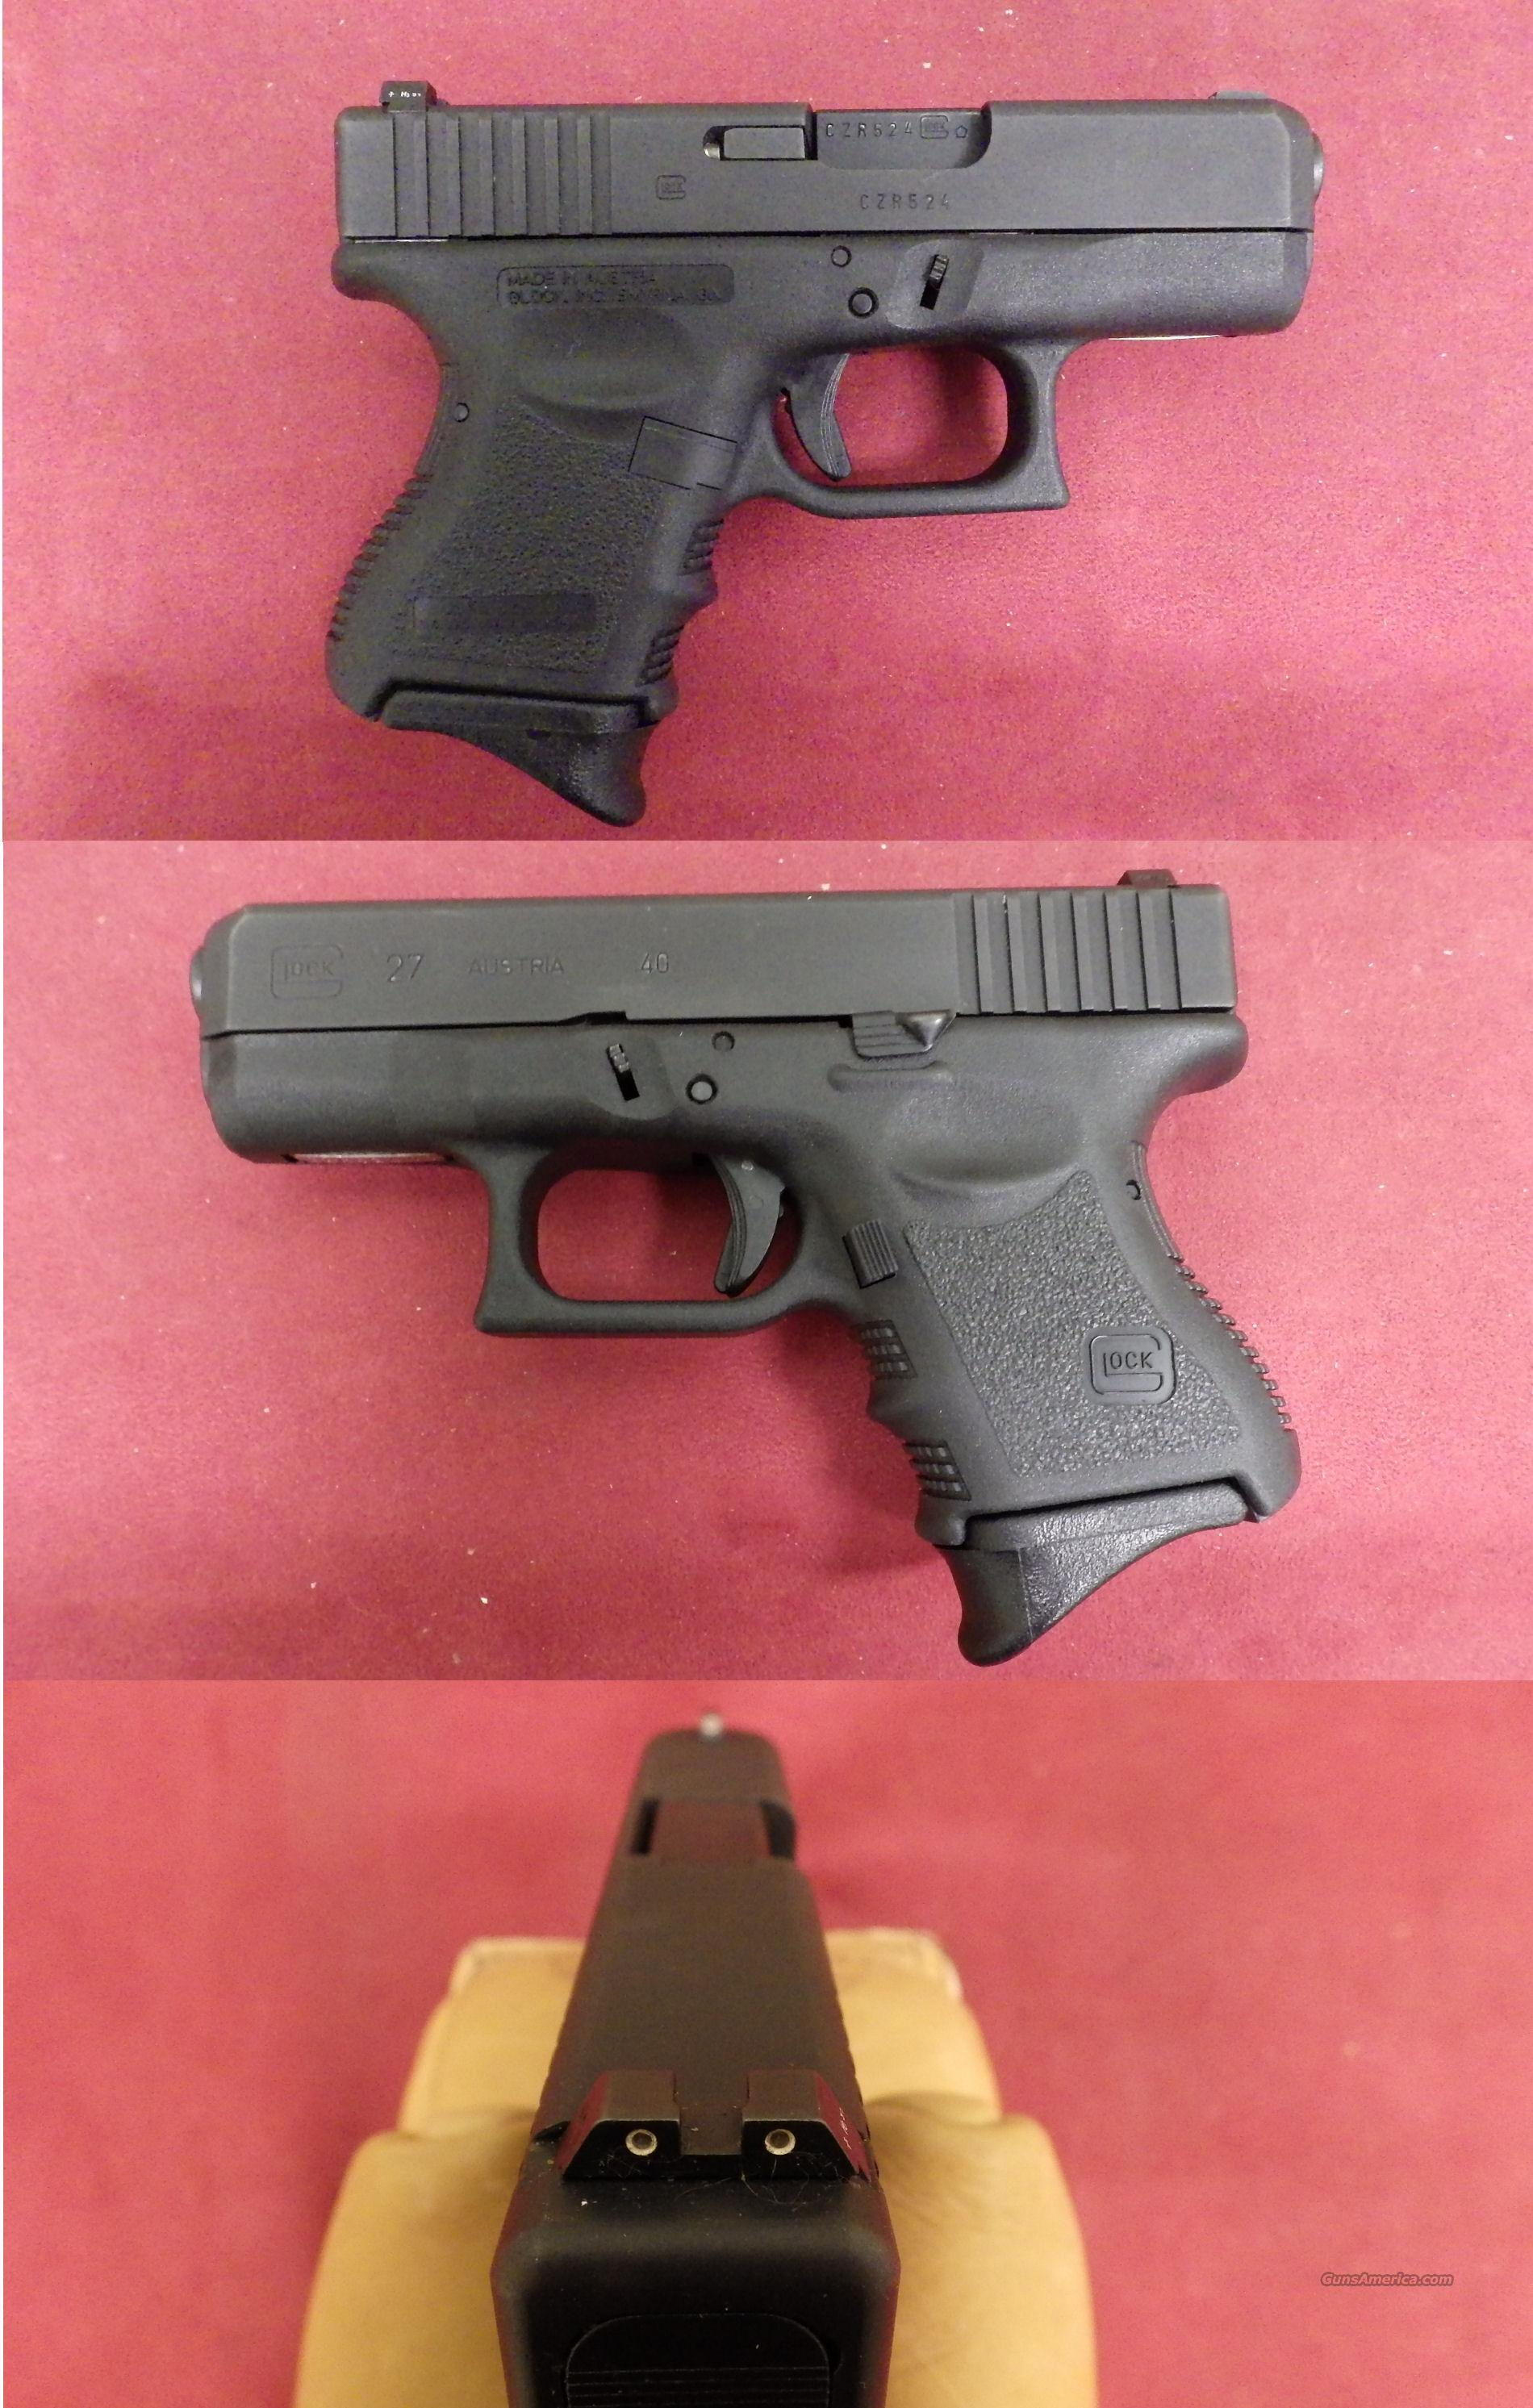 Glock Model 27 40 S&W *MUST CALL*  Guns > Pistols > Glock Pistols > 26/27